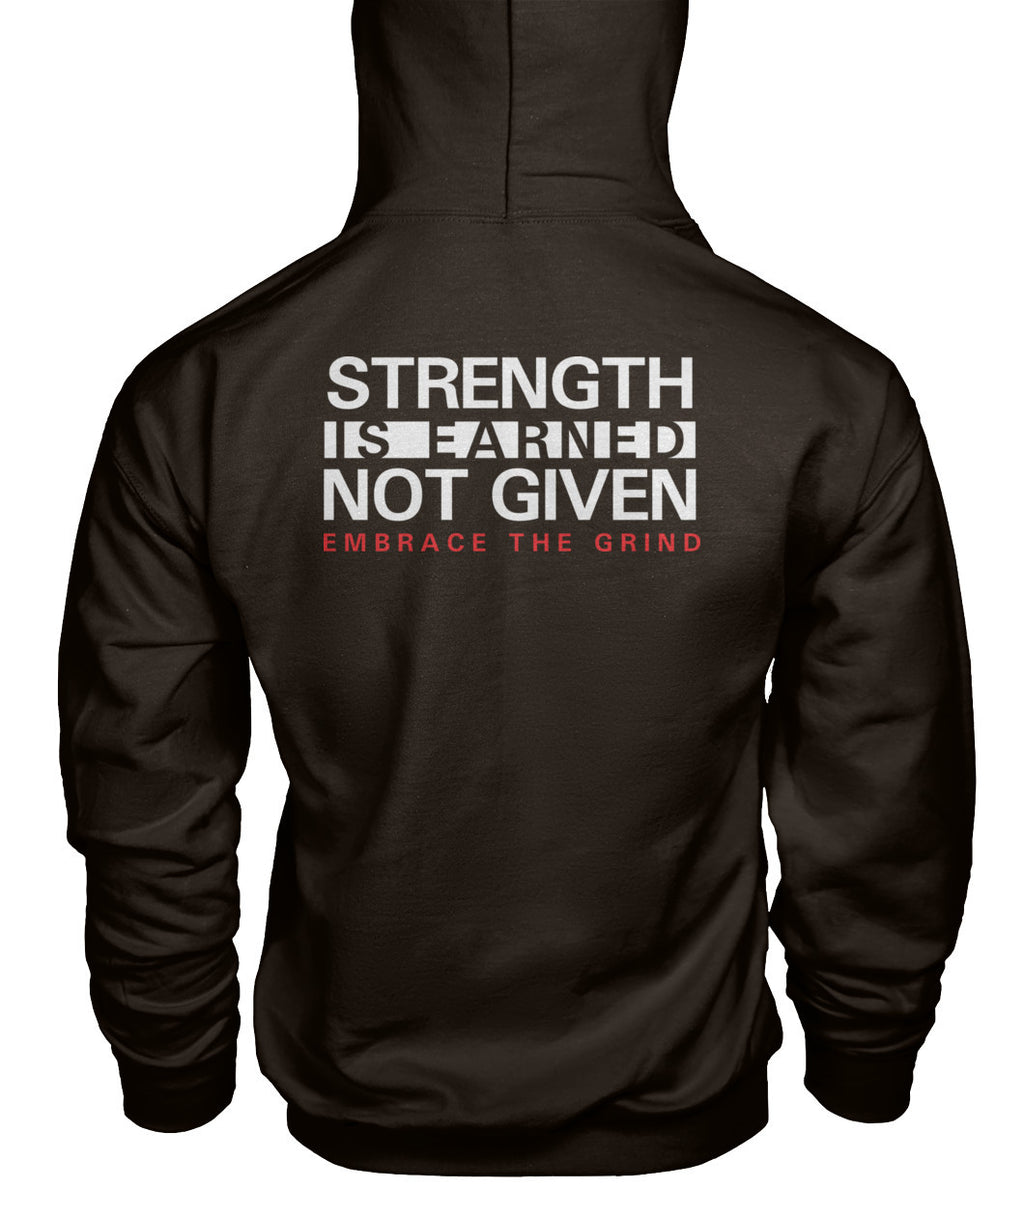 Embrace The Grind Men's Hoodie - Apex Fitness Co.